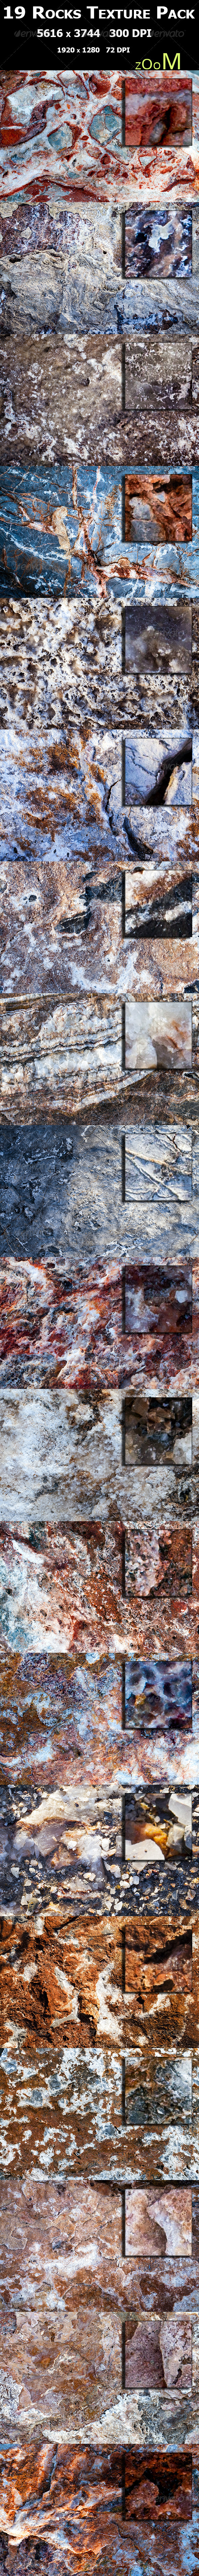 GraphicRiver 19 Rocks Texture Pack 3353221